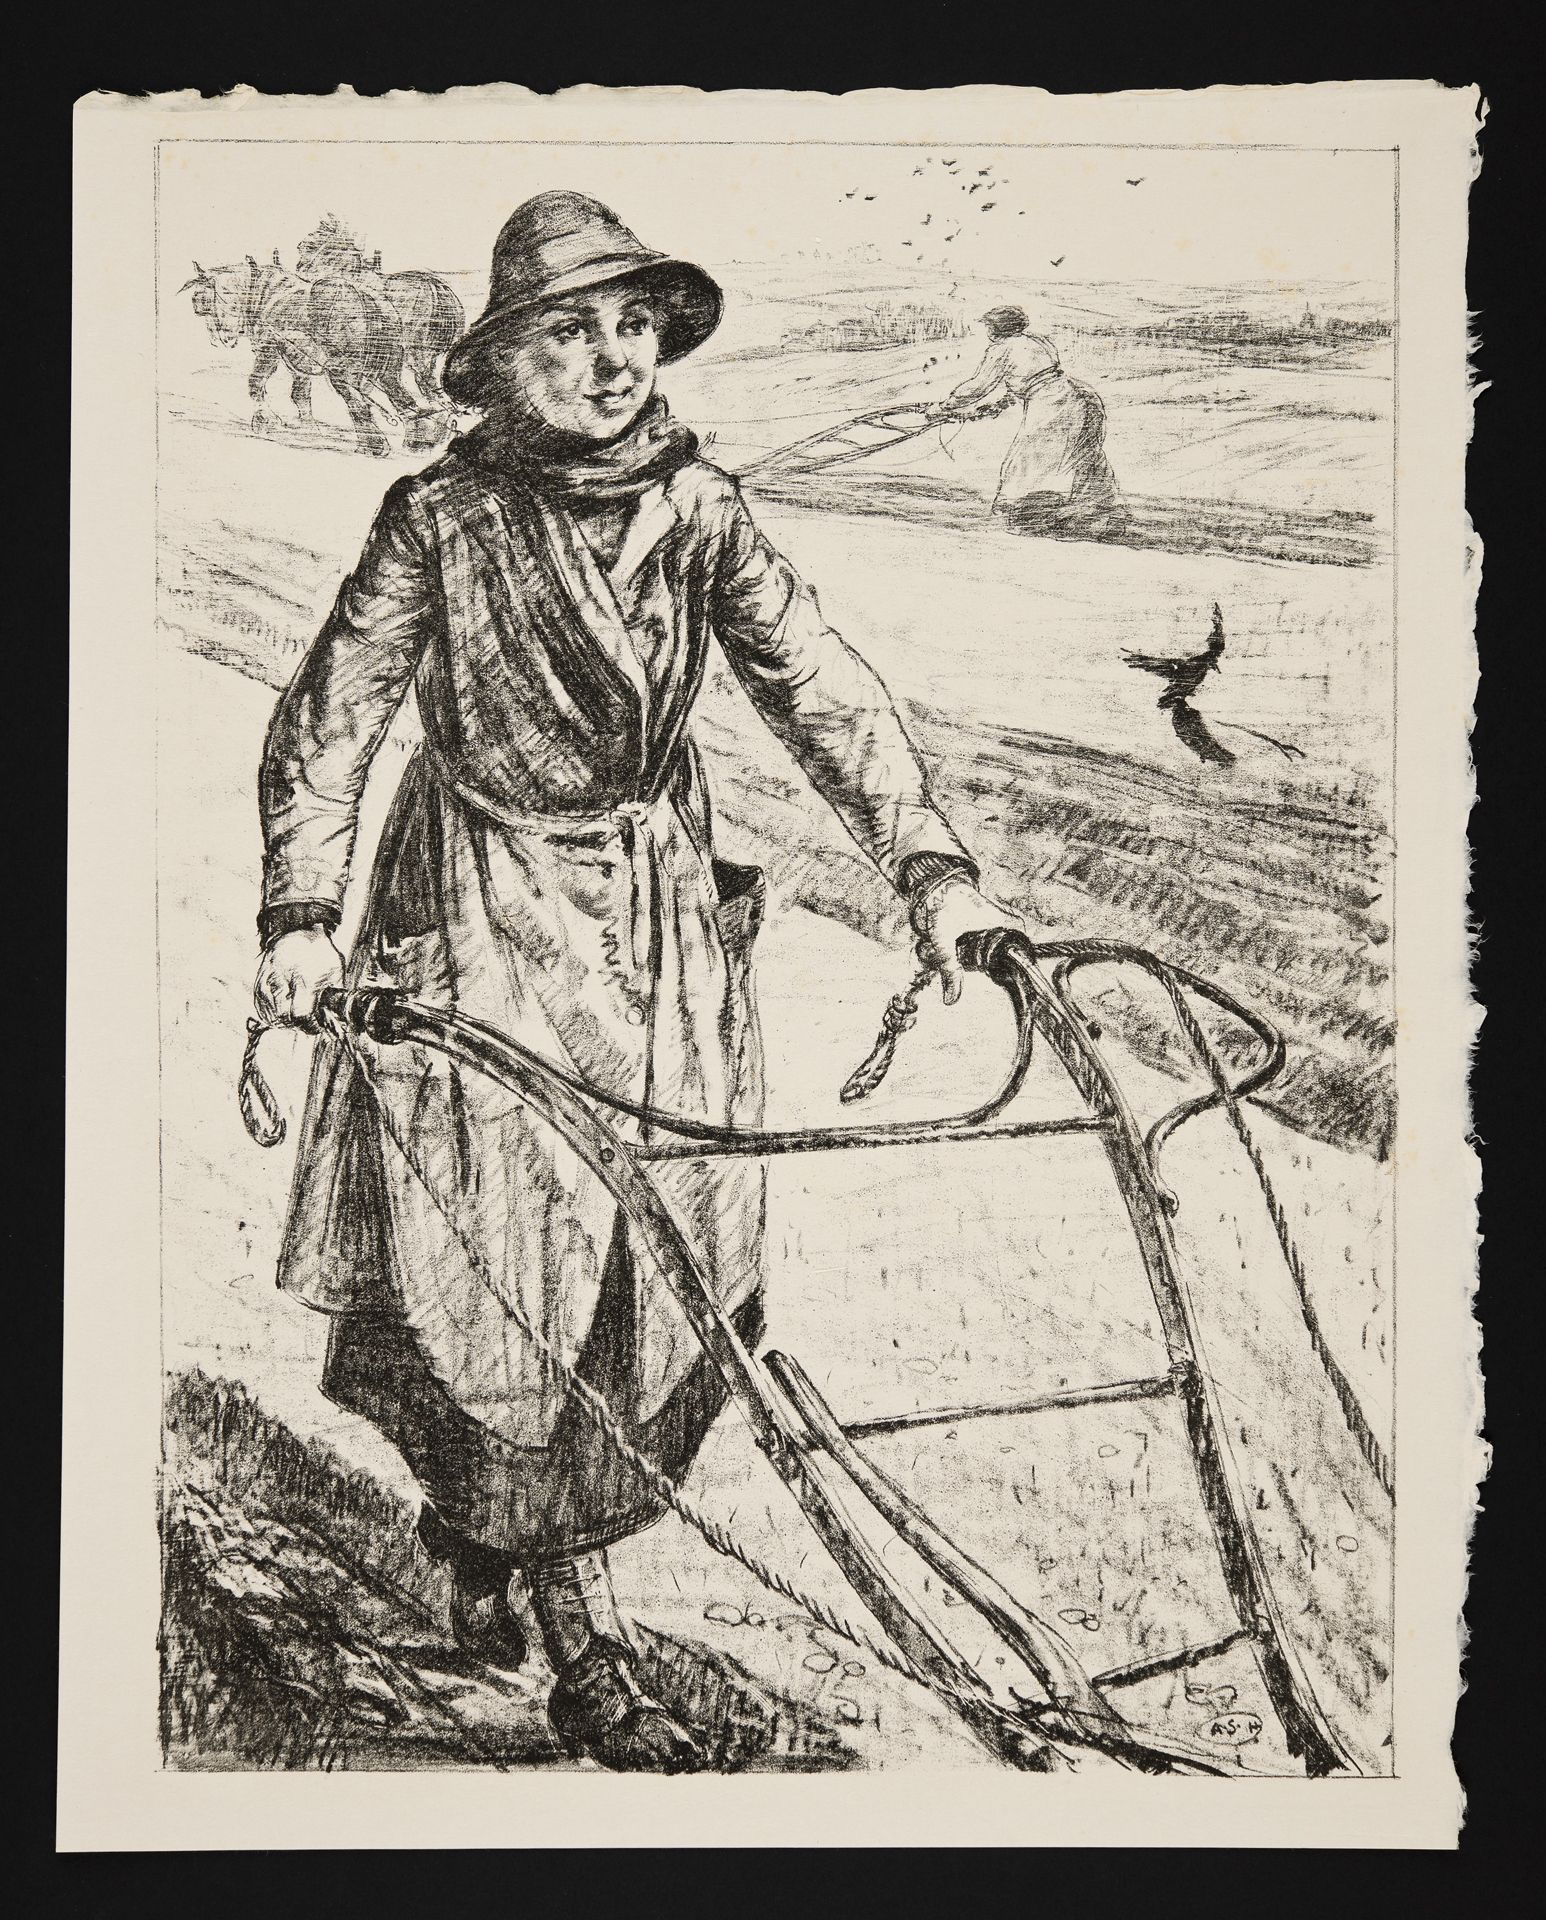 On the Land: Ploughing - A. S. Hartrick